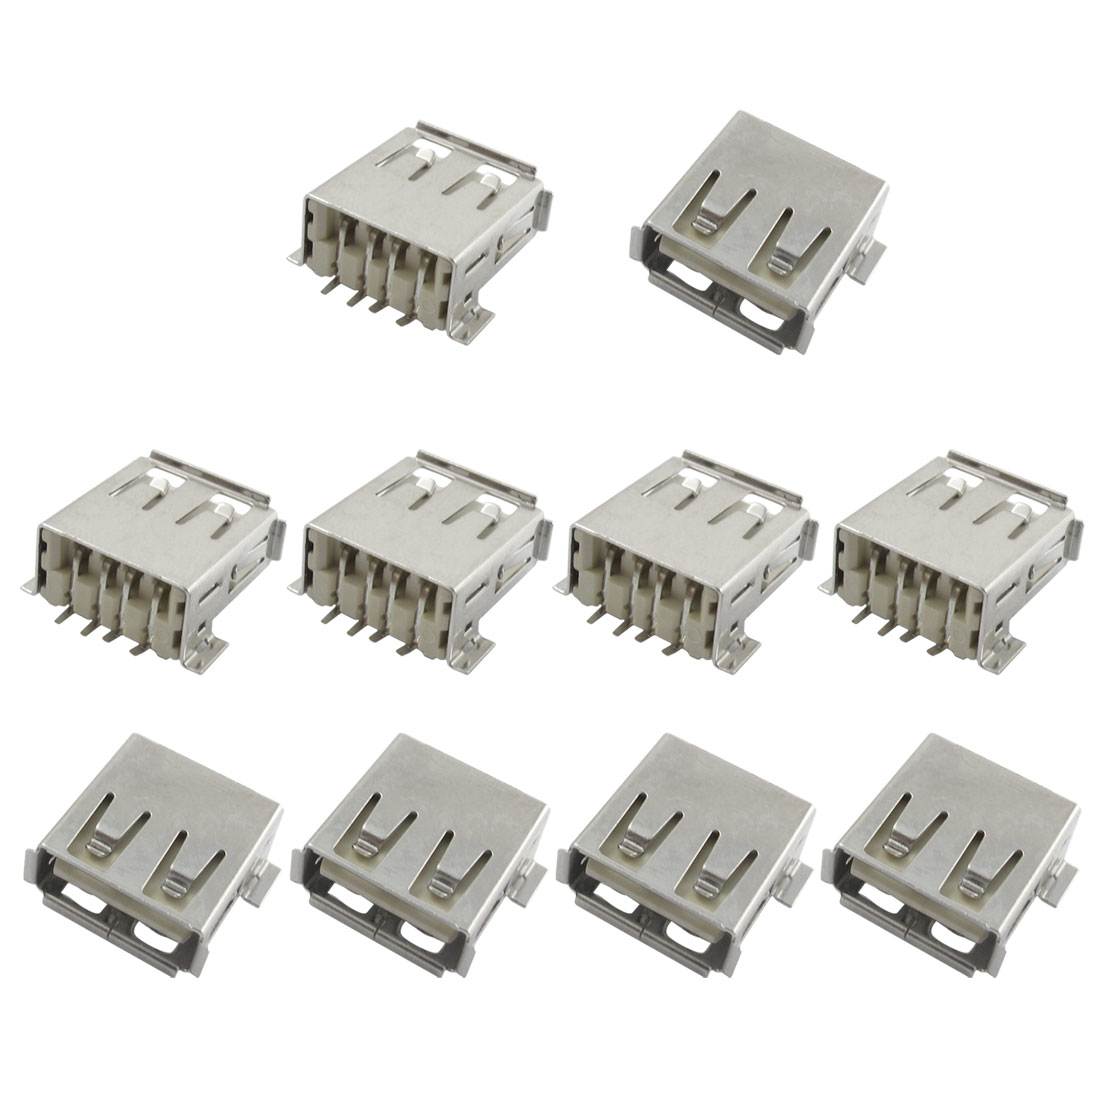 10 x USB Type A Socket Female Solder Adapter Connector